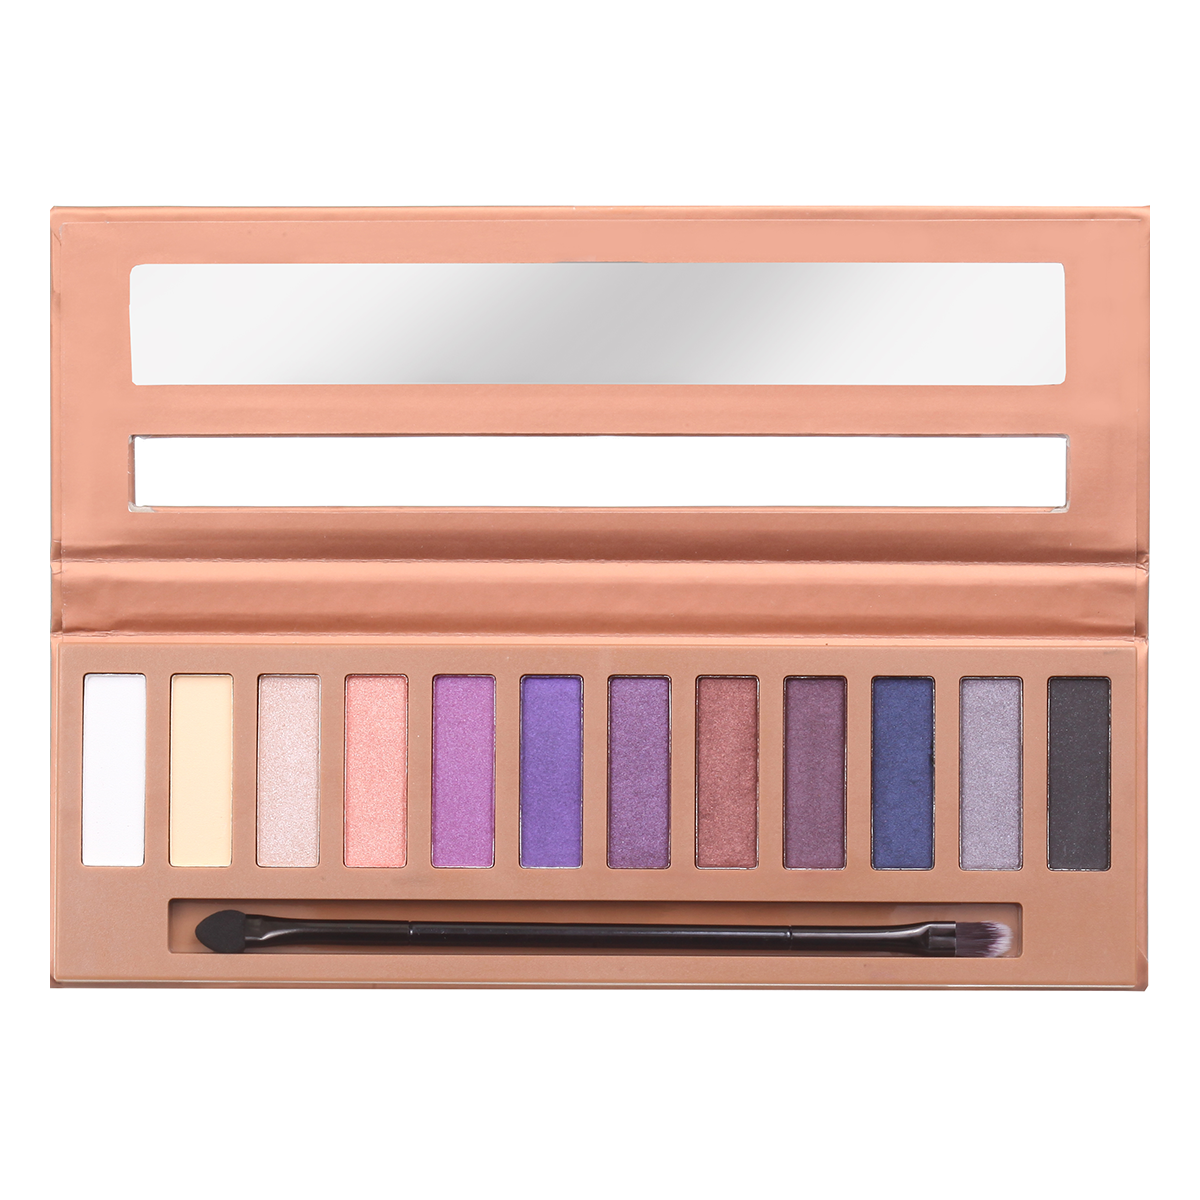 Silky Eyeshadow 12 Color Palette - Rebel